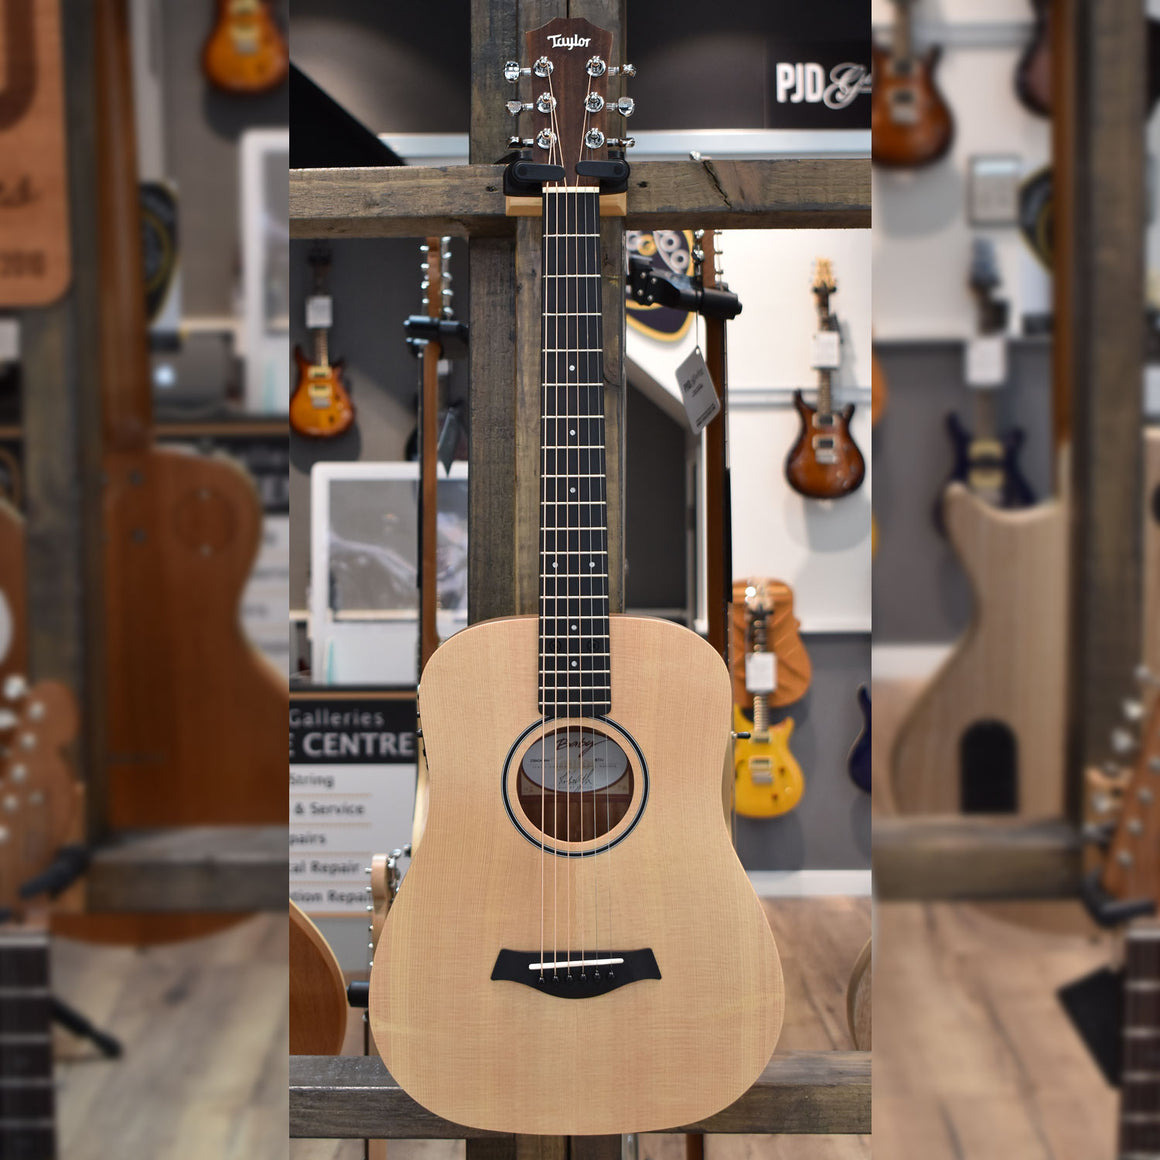 Baby Taylor BT1-e Walnut Acoustic Guitar with Taylor gig bag